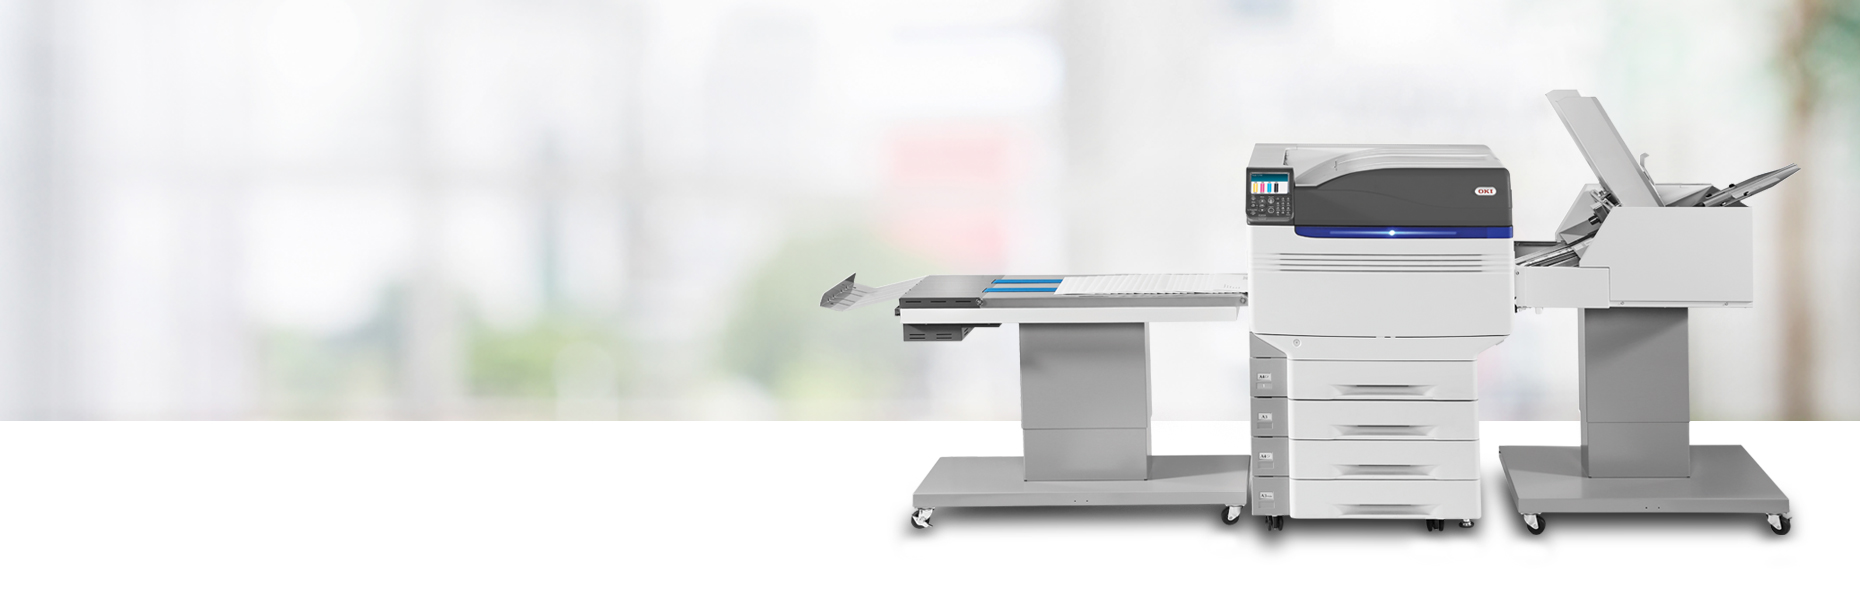 OKI Pro 9431DP+ Envelope Printer}